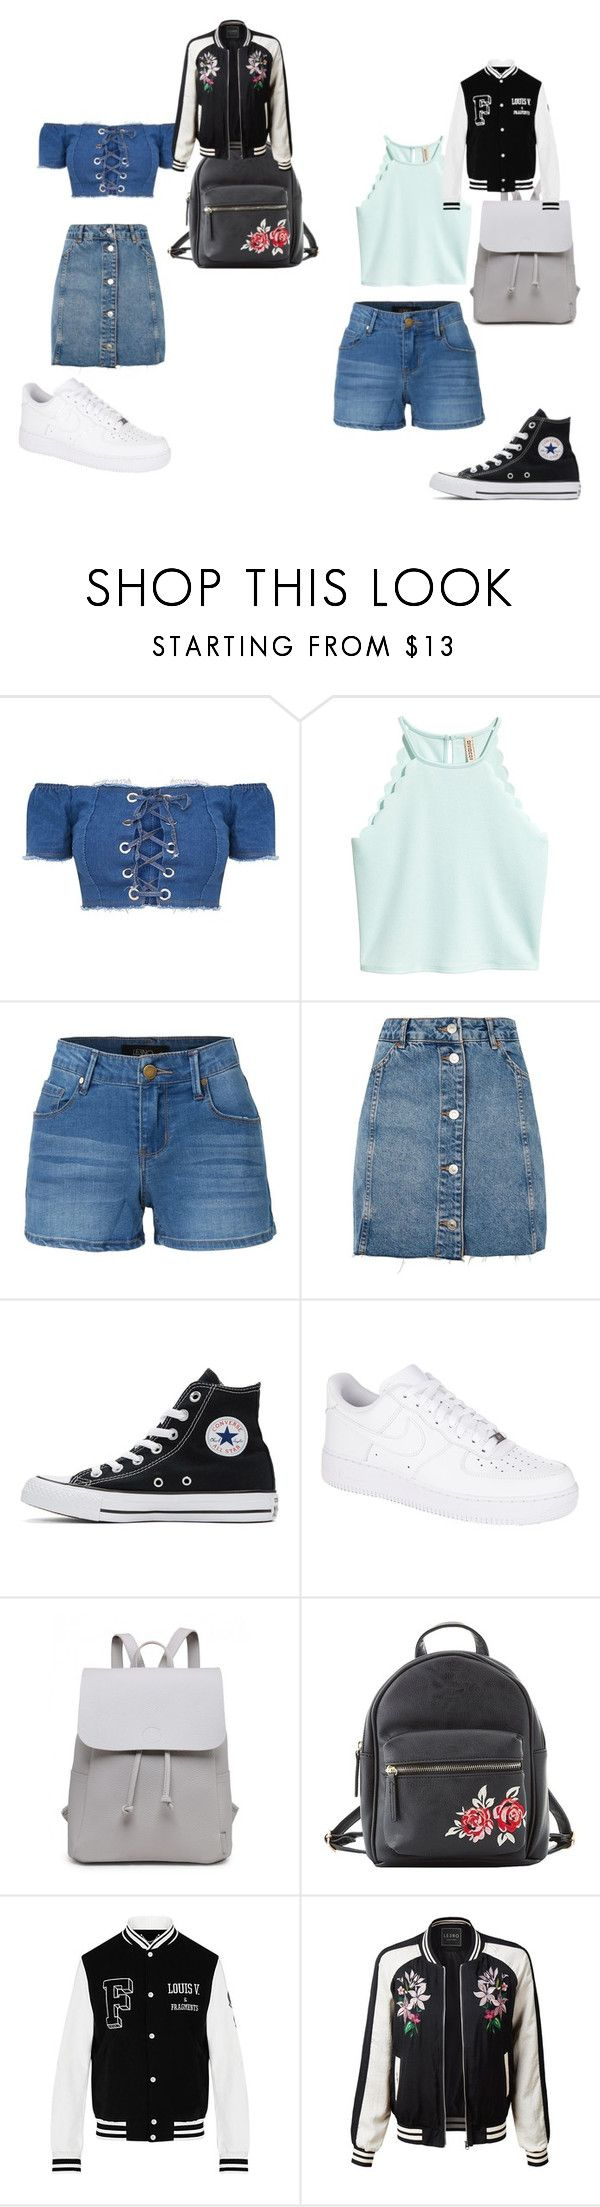 """Untitled #70"" by kimmomochan on Polyvore featuring LE3NO, Topshop, Converse, NIKE and Charlotte Russe"